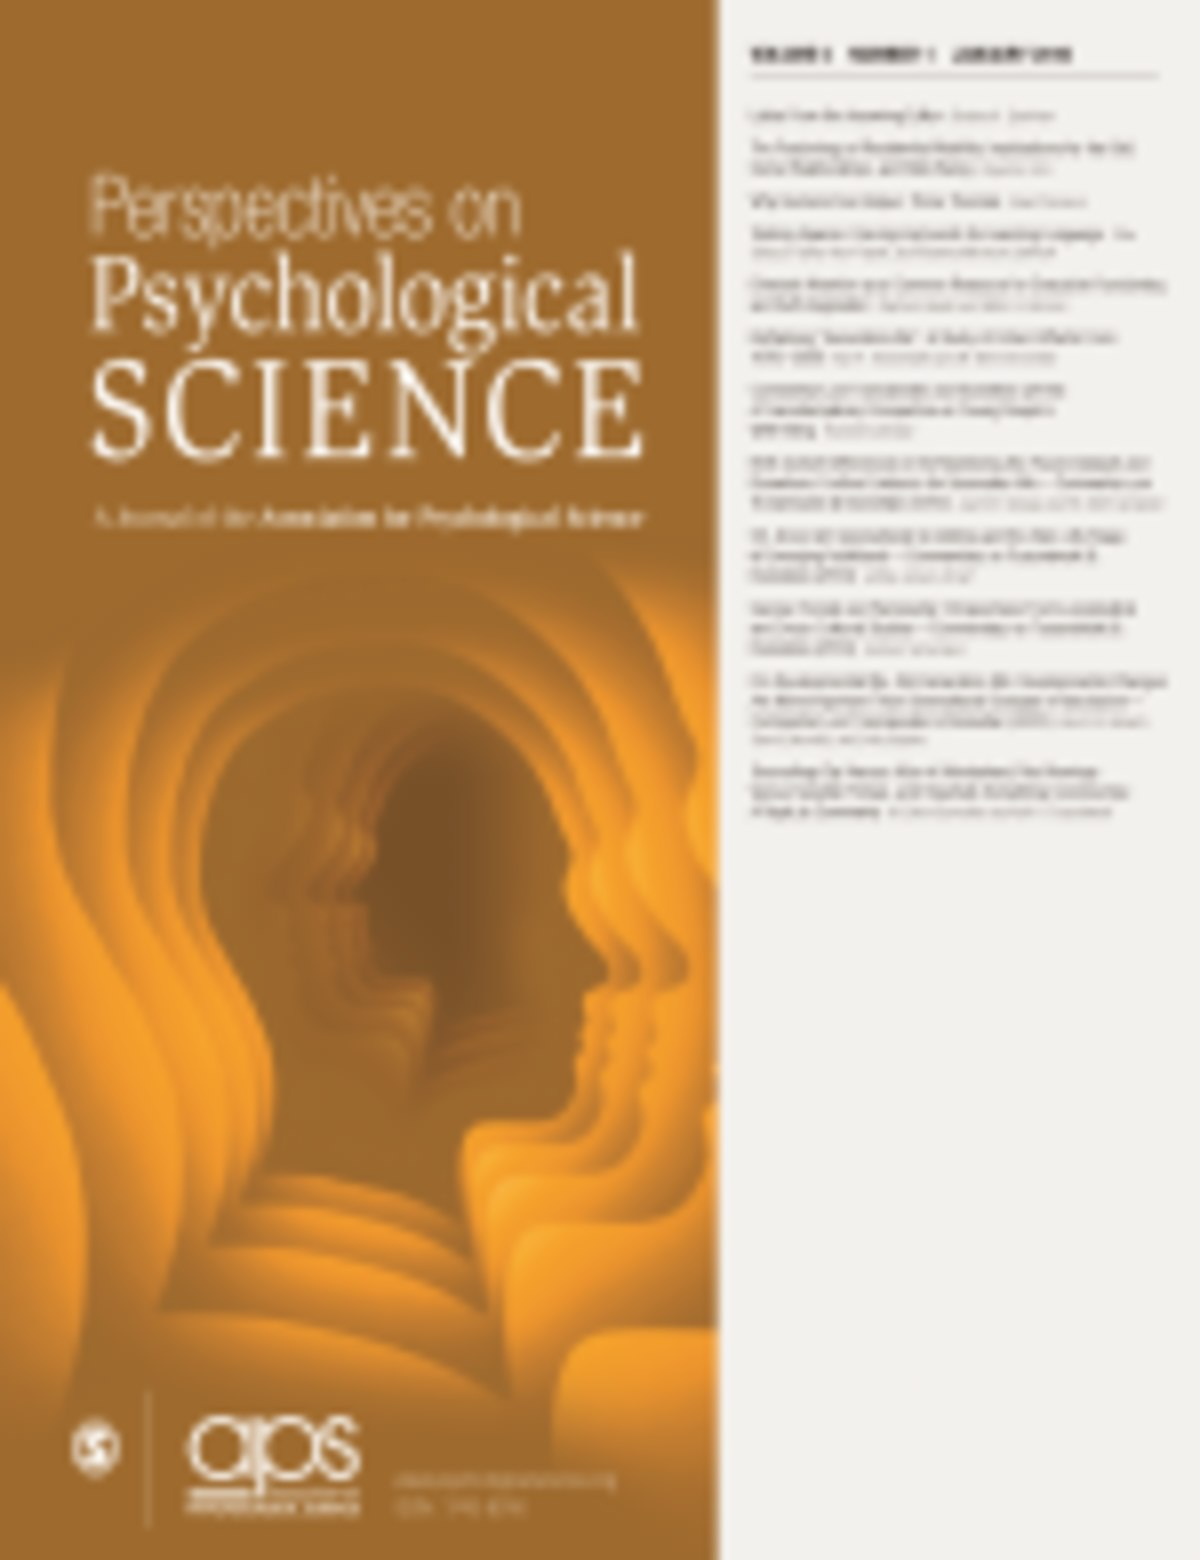 psychological science agenda Psa is defined as psychological science agenda rarely psa stands for psychological science agenda advertisement: this definition appears rarely.